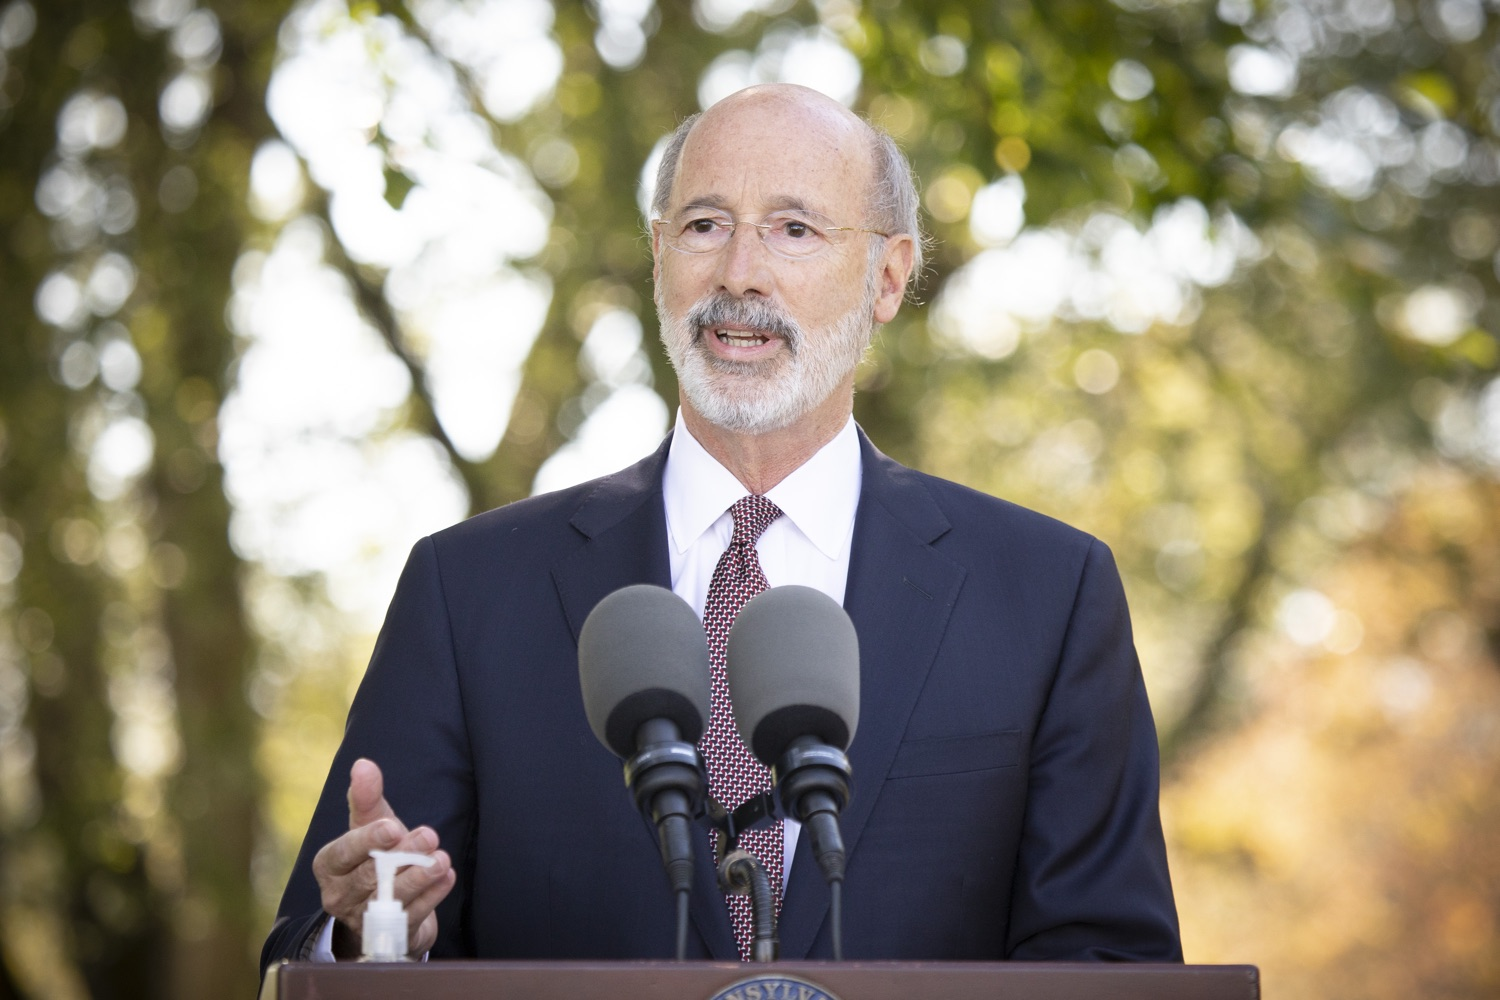 "<a href=""https://filesource.wostreaming.net/commonwealthofpa/photo/18321_gov_aca_dz_002.jpg"" target=""_blank"">⇣ Download Photo<br></a>Pennsylvania Governor Tom Wolf speaking to the press.  As the number of positive COVID-19 cases rise in Pennsylvania and as we enter flu season, protecting the Affordable Care Act (ACA) and ensuring that all Pennsylvanians have access to health coverage are more important than ever, Governor Tom Wolf said today in Chester County. The governor was joined by local elected officials and representatives from local health care organizations. Landenberg, PA  October 15, 2020"